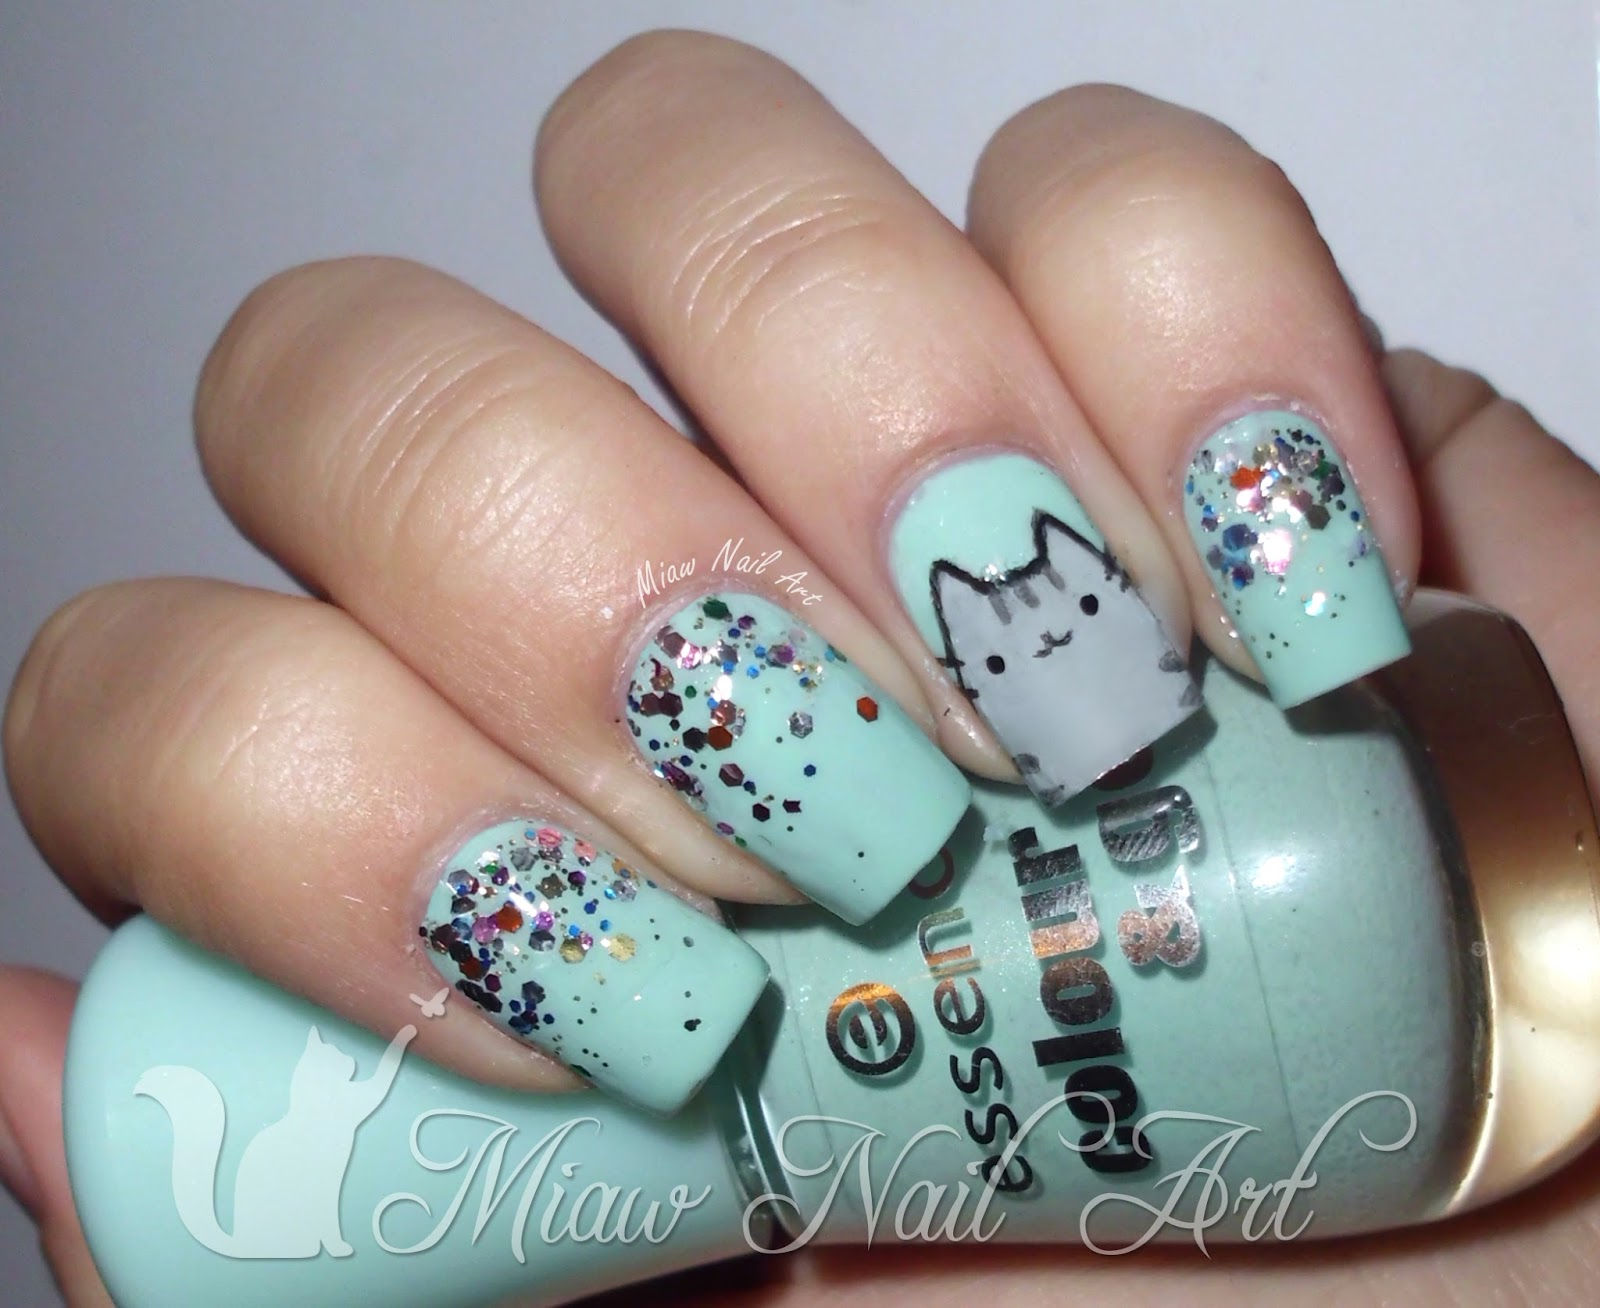 Pusheen nails | Miaw Nail Art